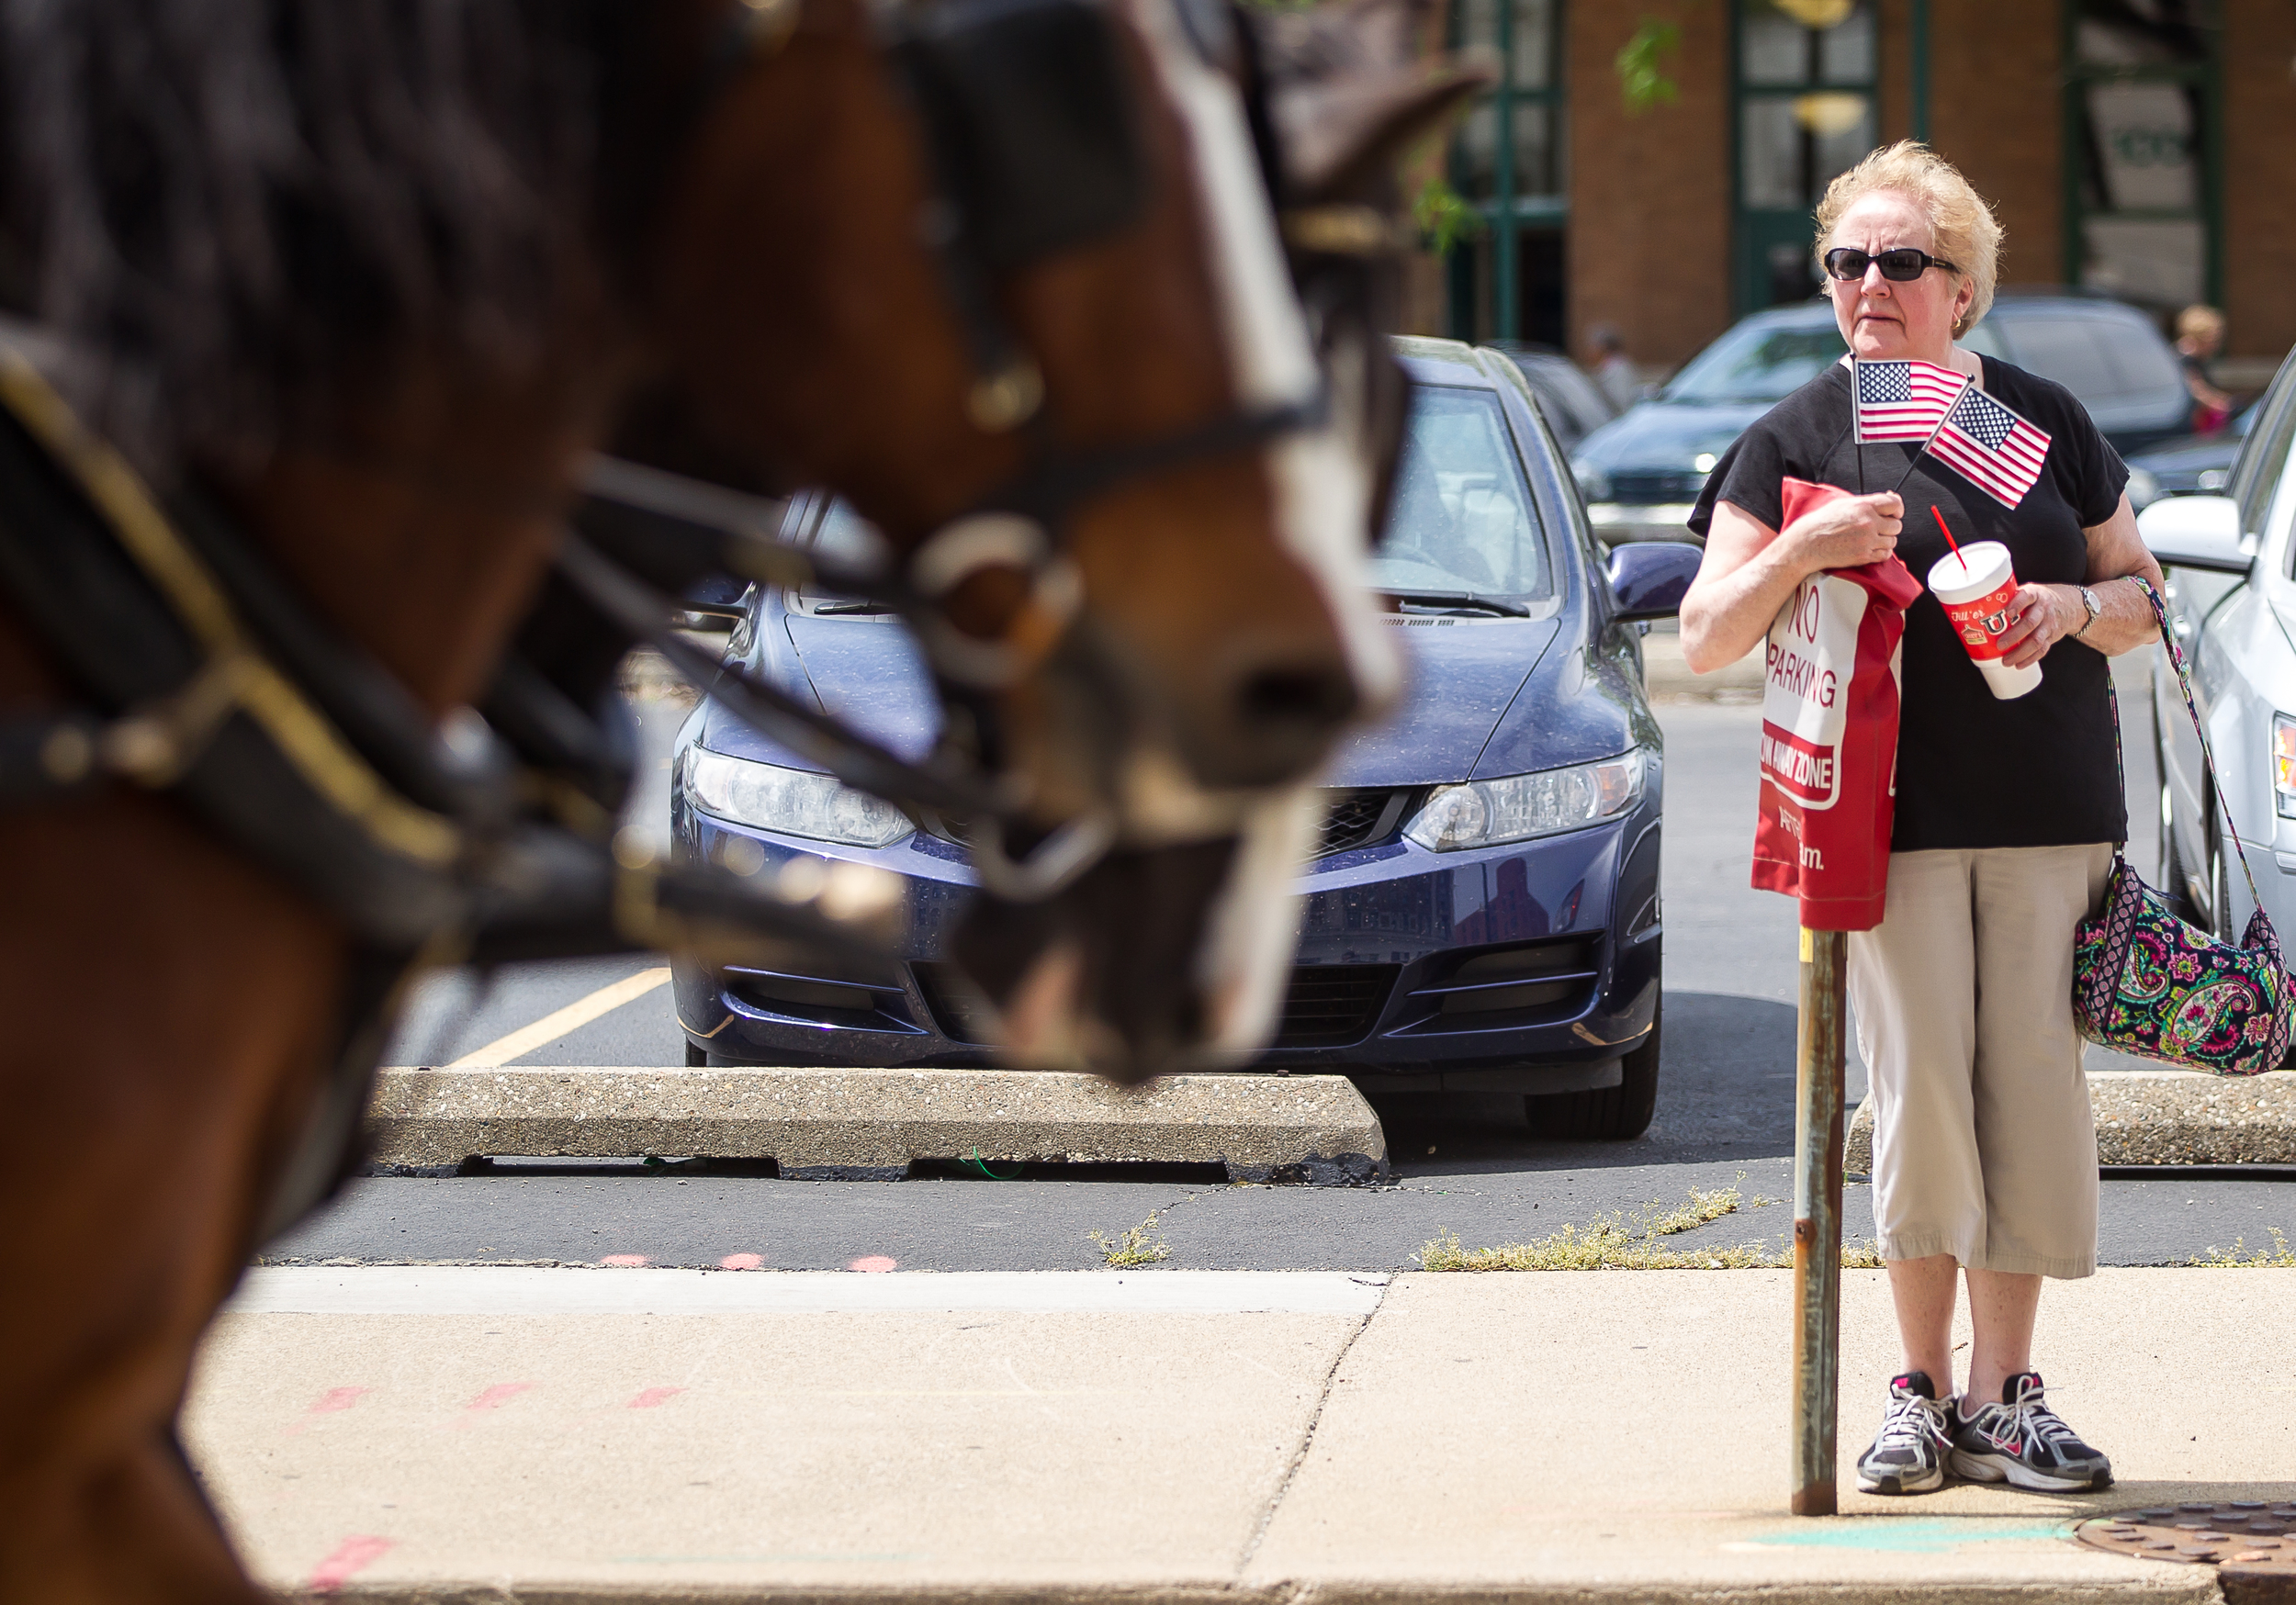 Ann Broch, of Greenview, Ill., watches the parade from Fourth Street as the horse drawn hearse passes by in the funeral procession during the 2015 Lincoln Funeral Re-enactment, Sunday, May 3, 2015, in Springfield, Ill. Justin L. Fowler/The State Journal-Register